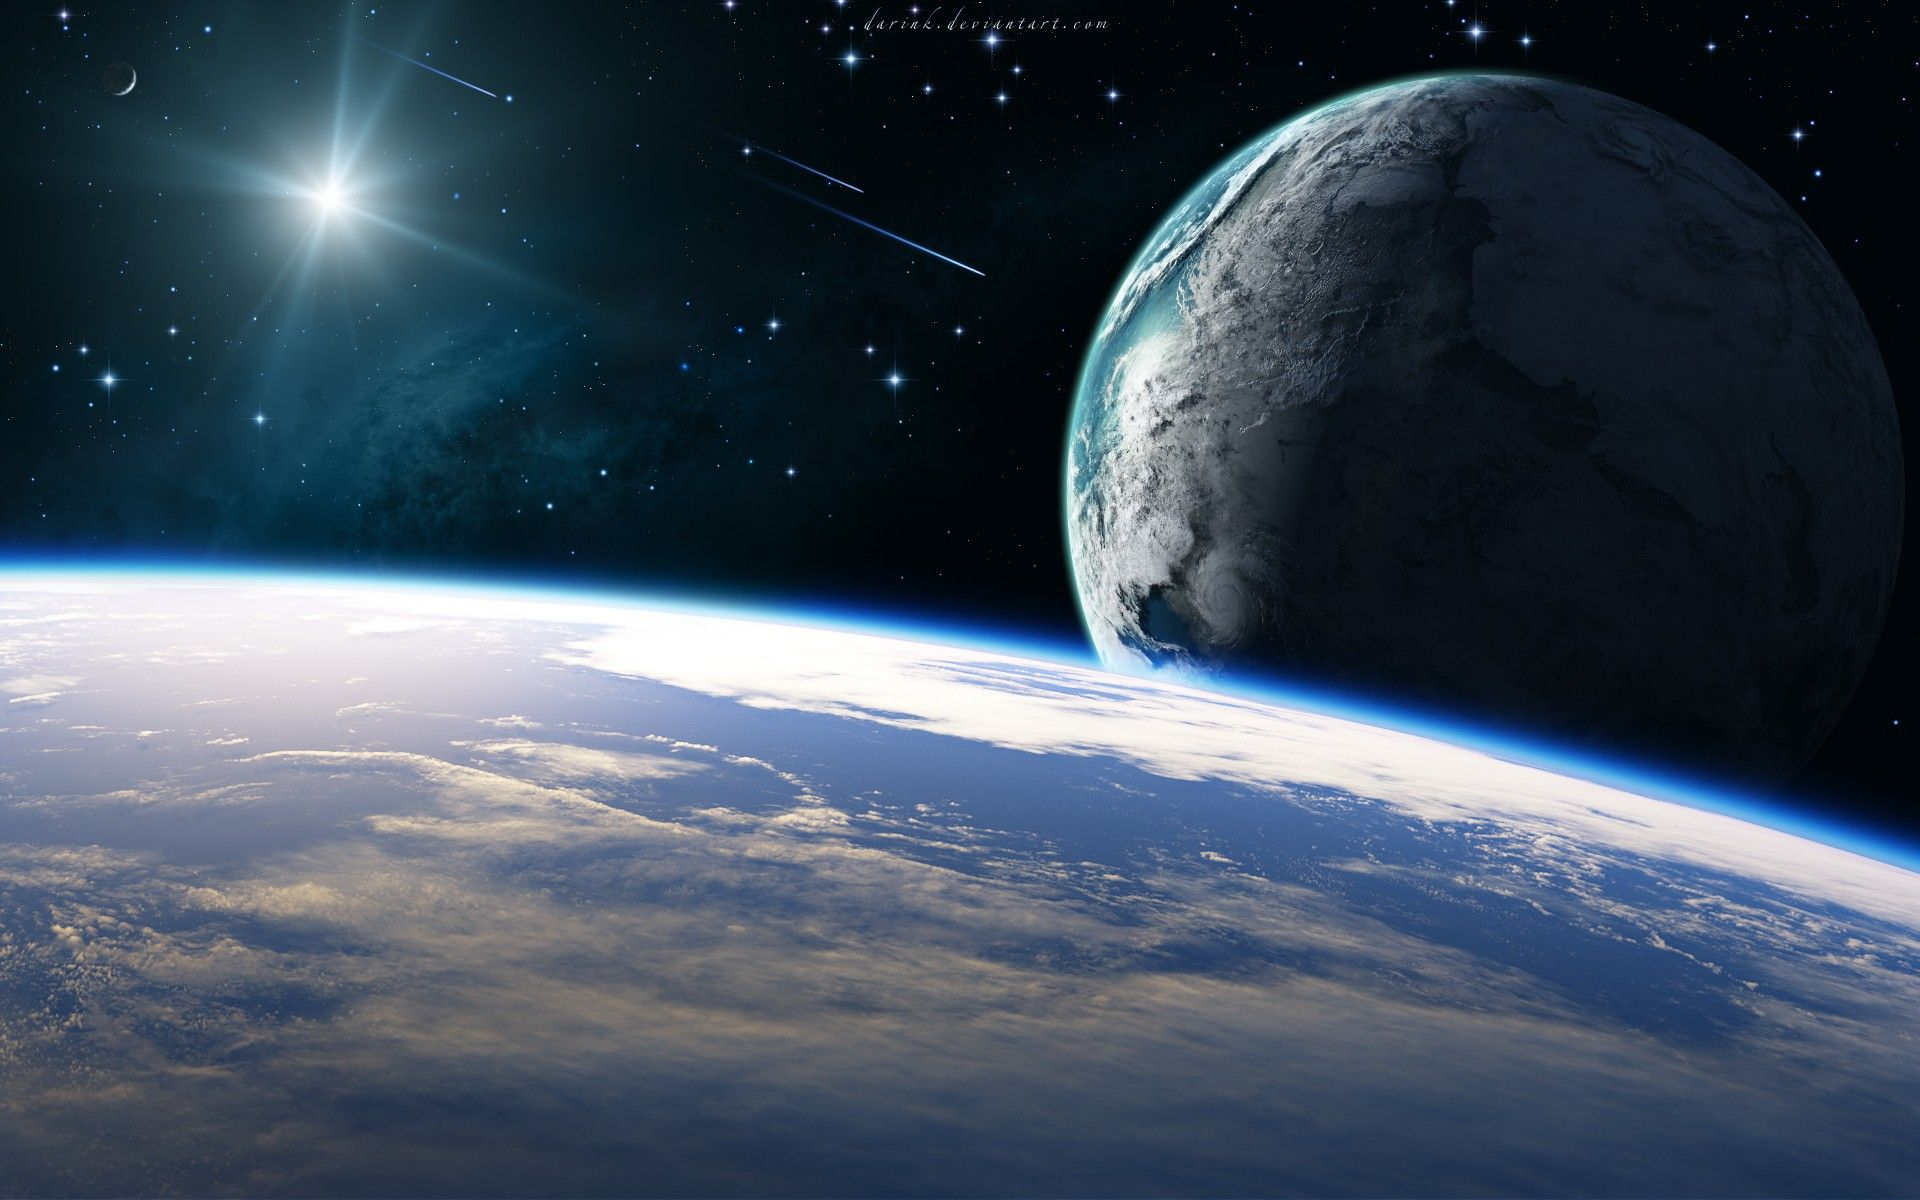 Hd Wallpaper Earth From Space Stars And Planets Planeta Tierra